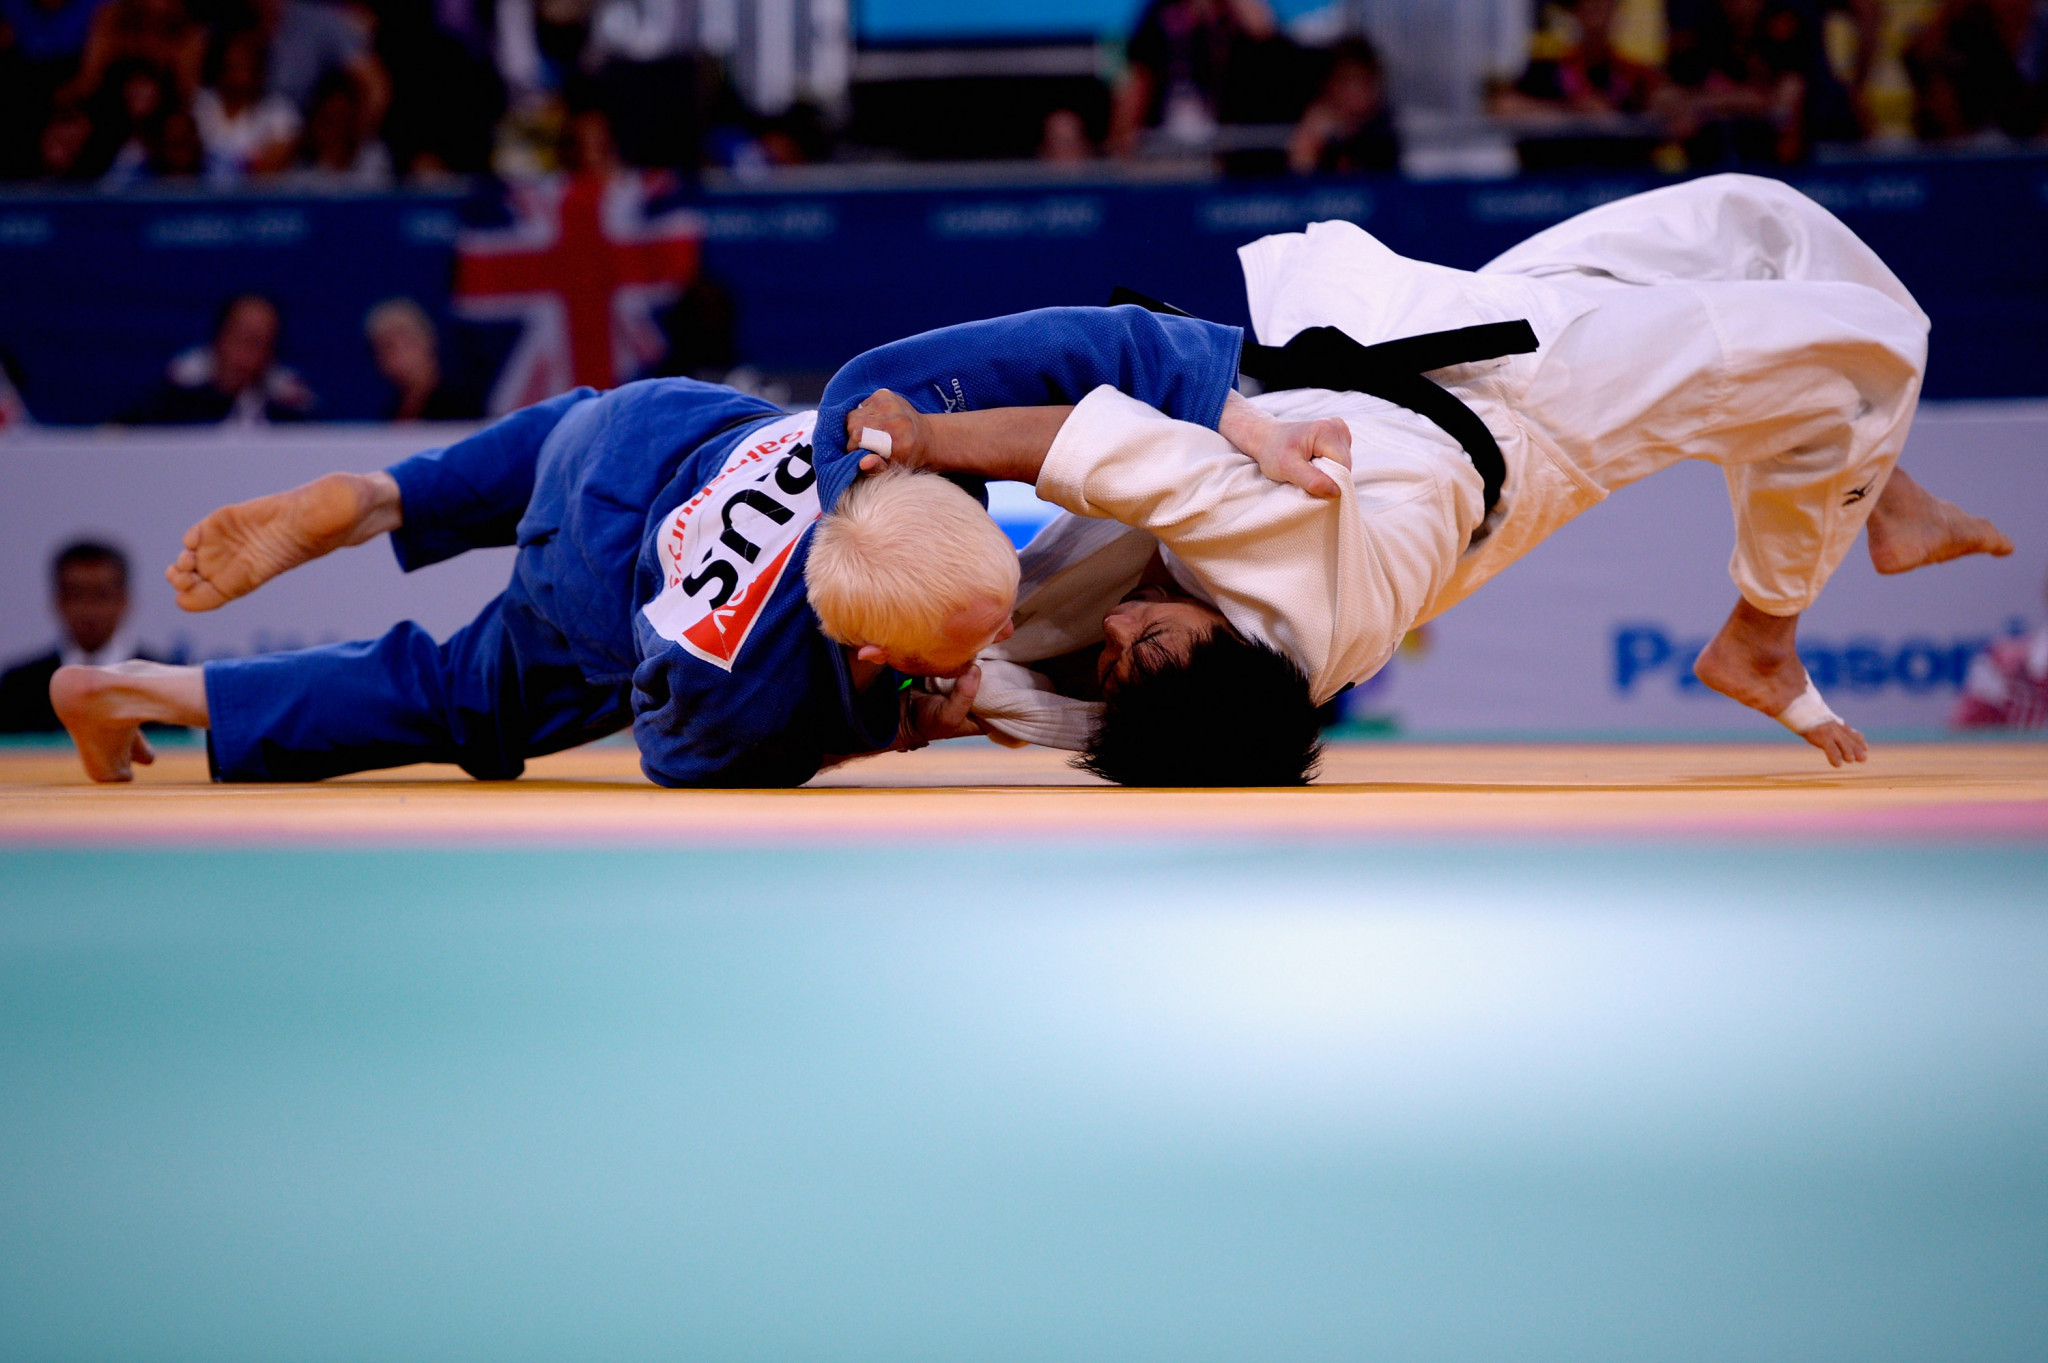 IBSA judo is soliciting the views of athletes, coaches, officials and others ahead of draft new classification criteria ©Getty Images